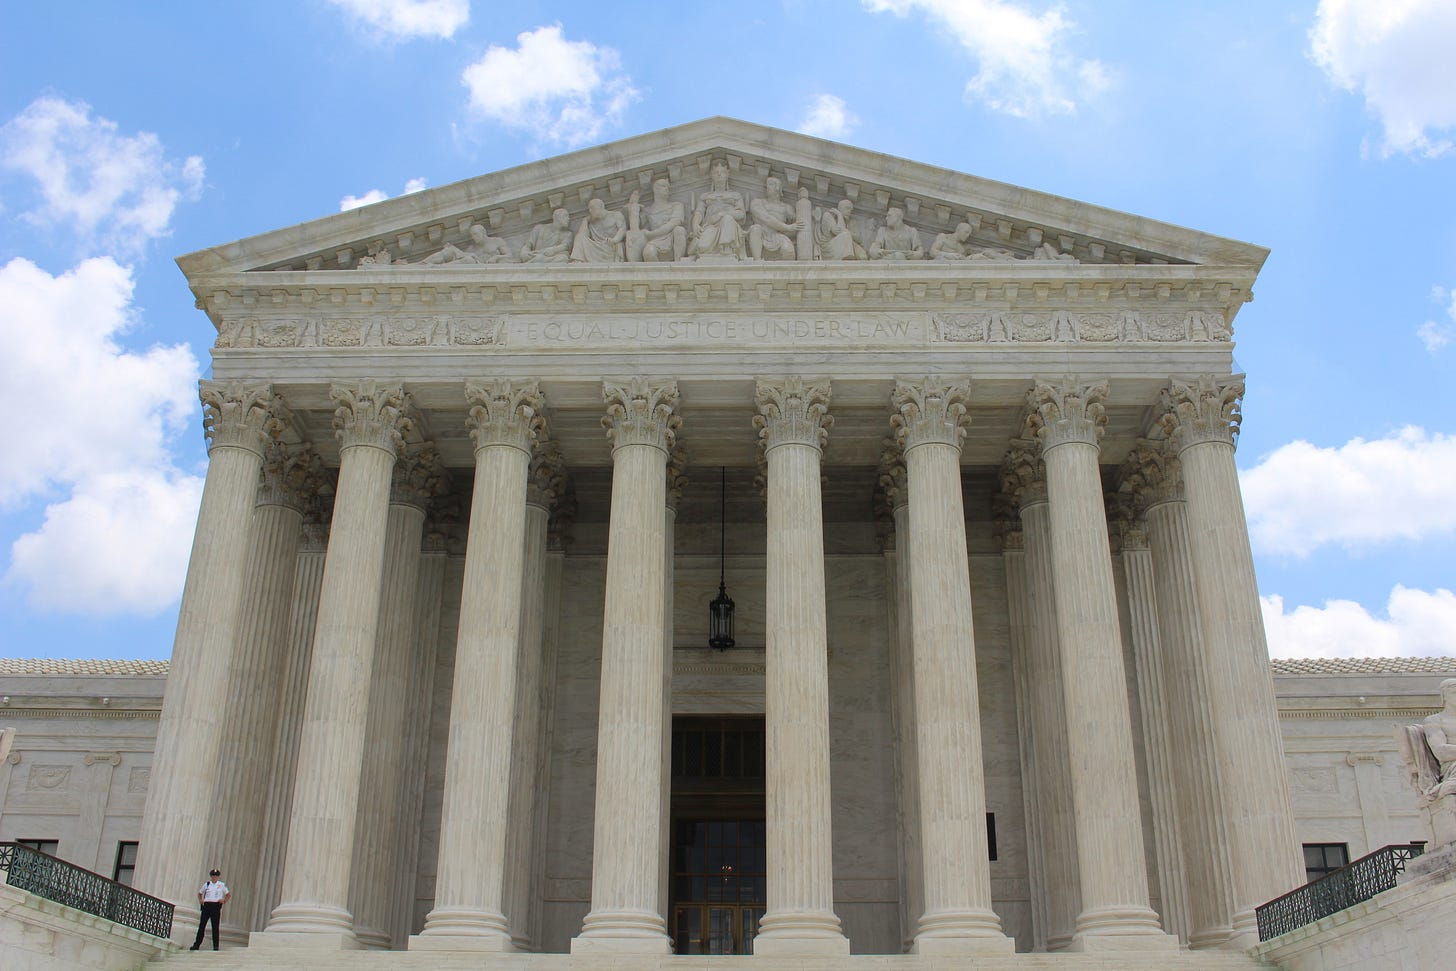 Photo of the front of the Supreme Court building taken on a sunny day with blue sky and white clouds in the background.